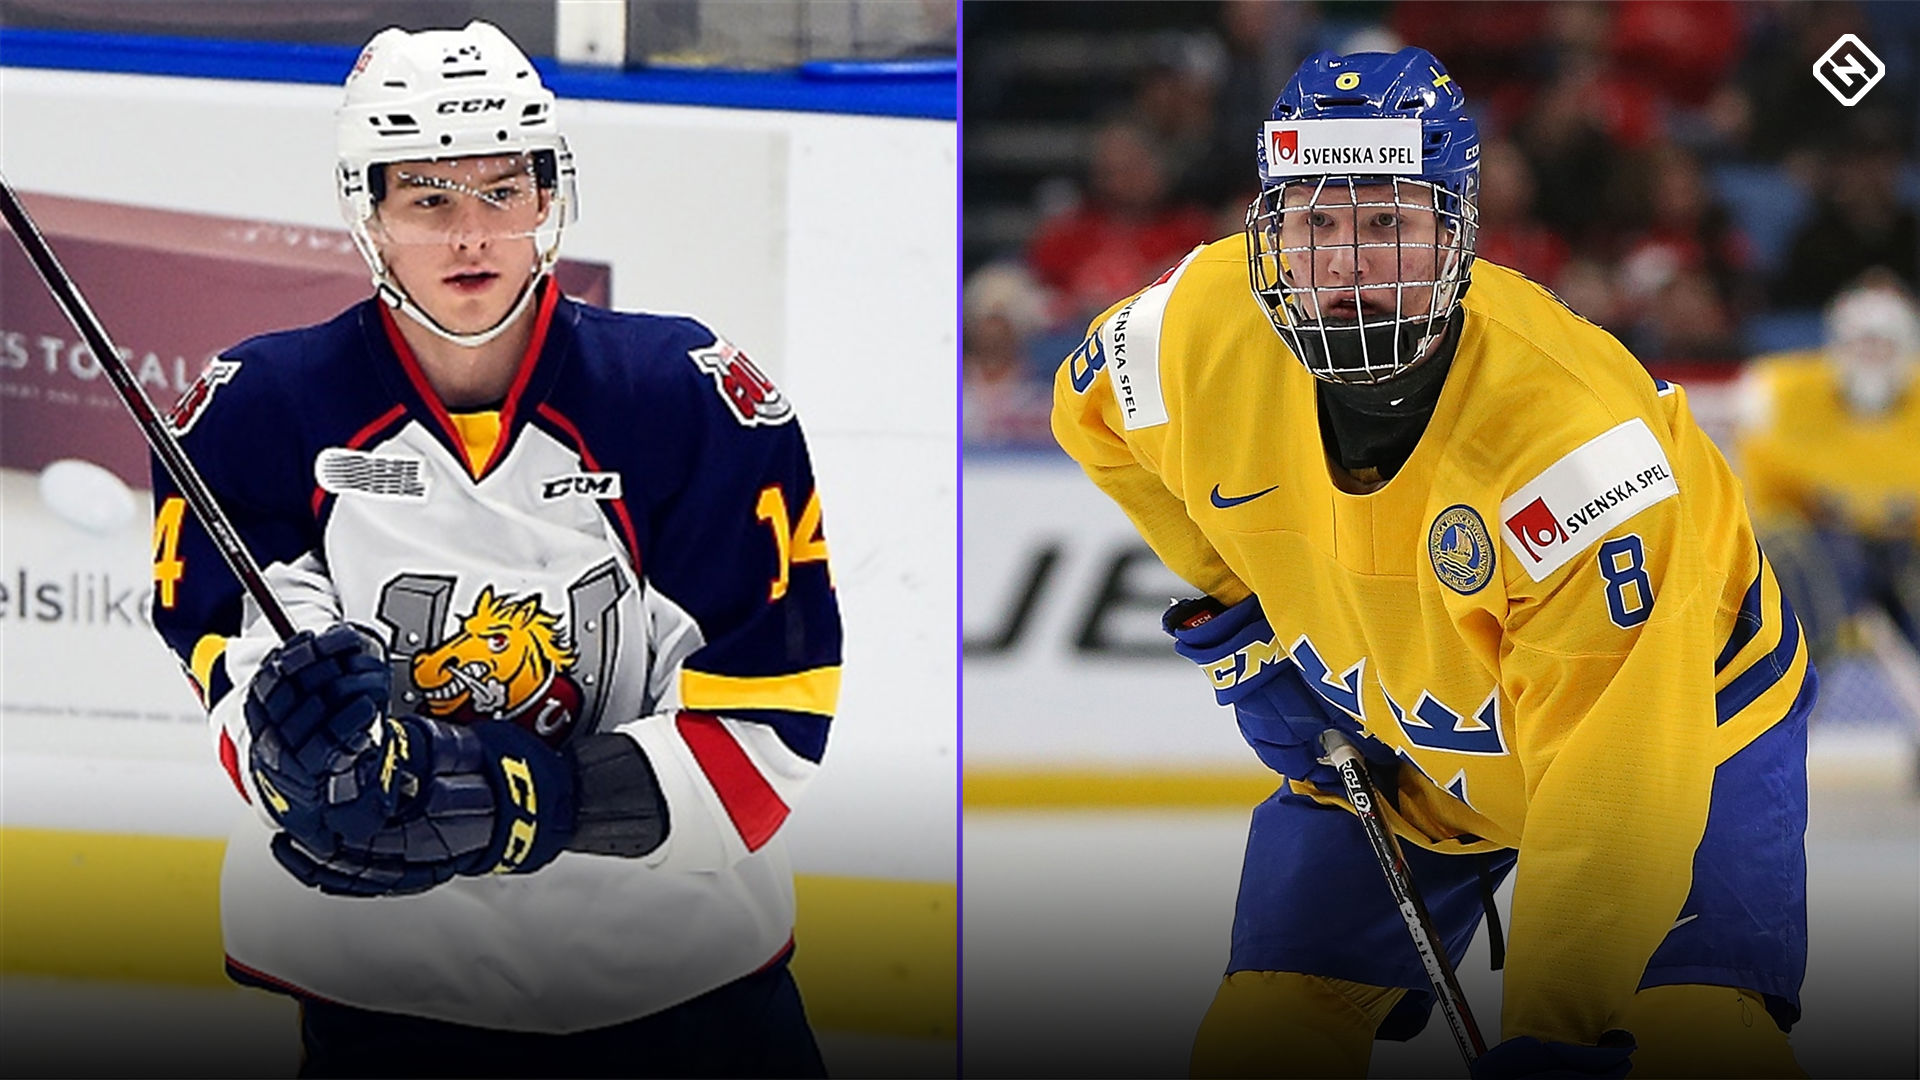 OHL: Why Andrei Svechnikov's Star Potential Is On Par With Rasmus Dahlin